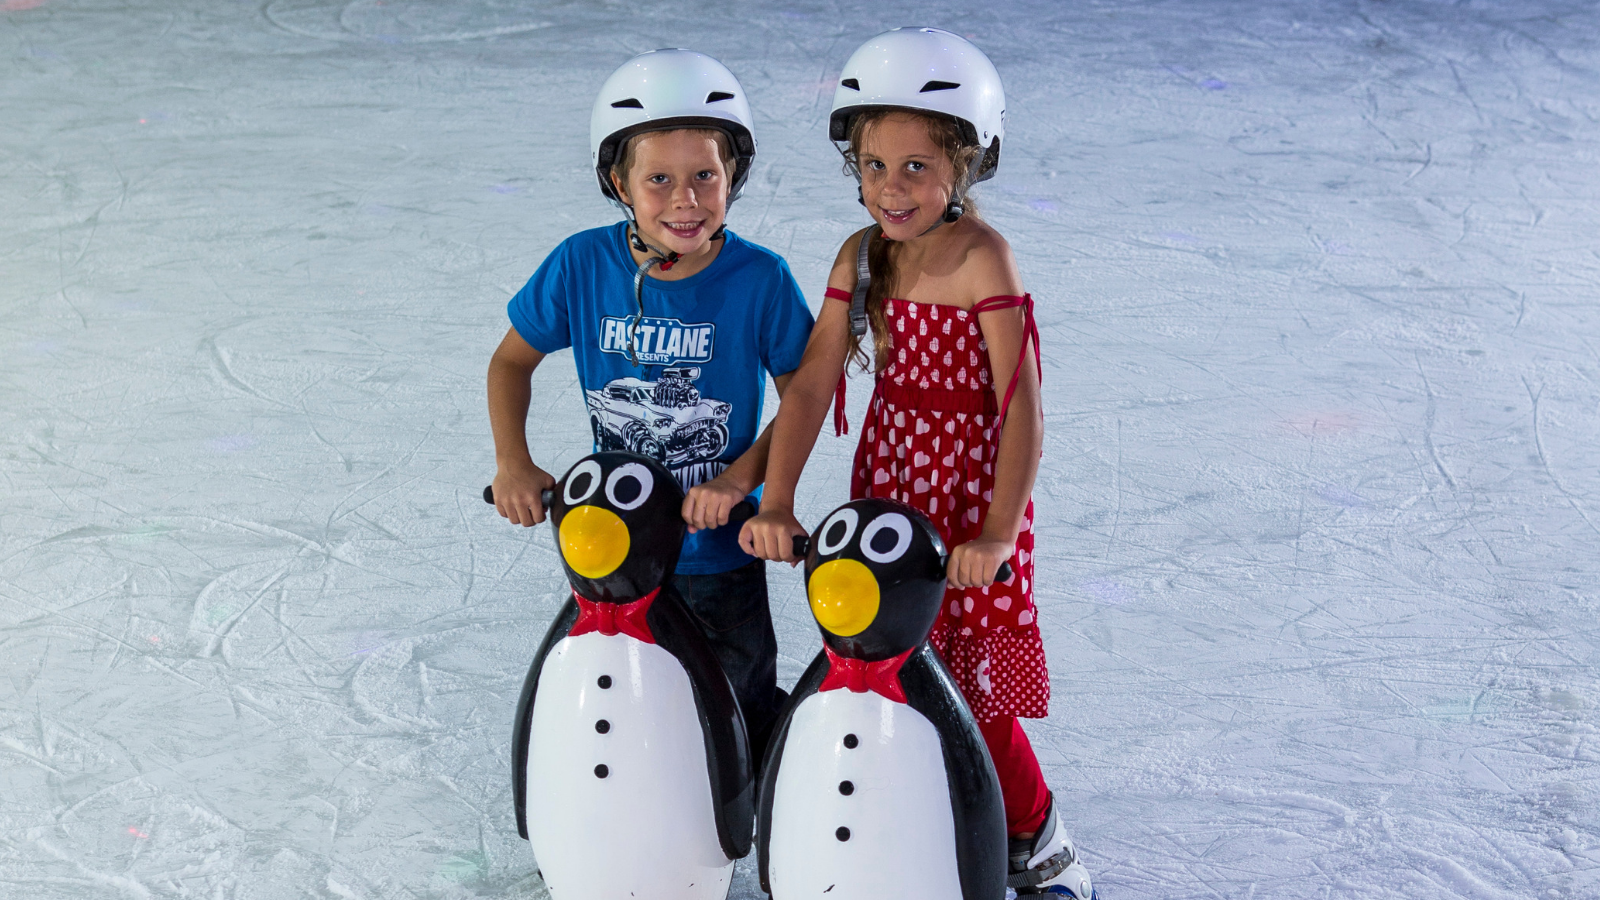 WIN // A Party for 10 at Planet Chill Ice-Skating Rink